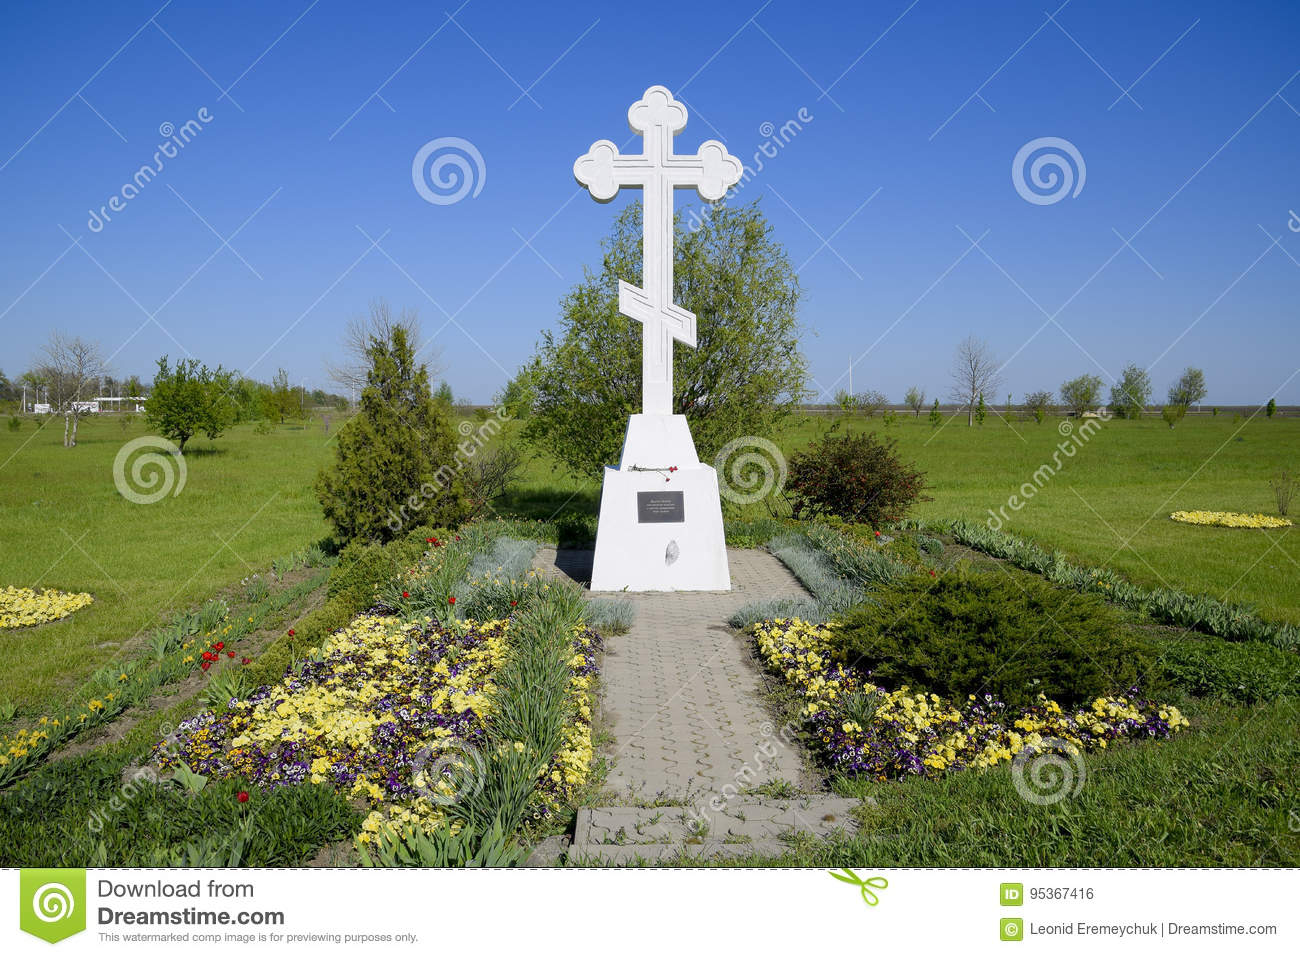 Orthodox cross on the entrance to the settlement. Symbol of the Christian faith. Orthodox cross for absorption entering into the c